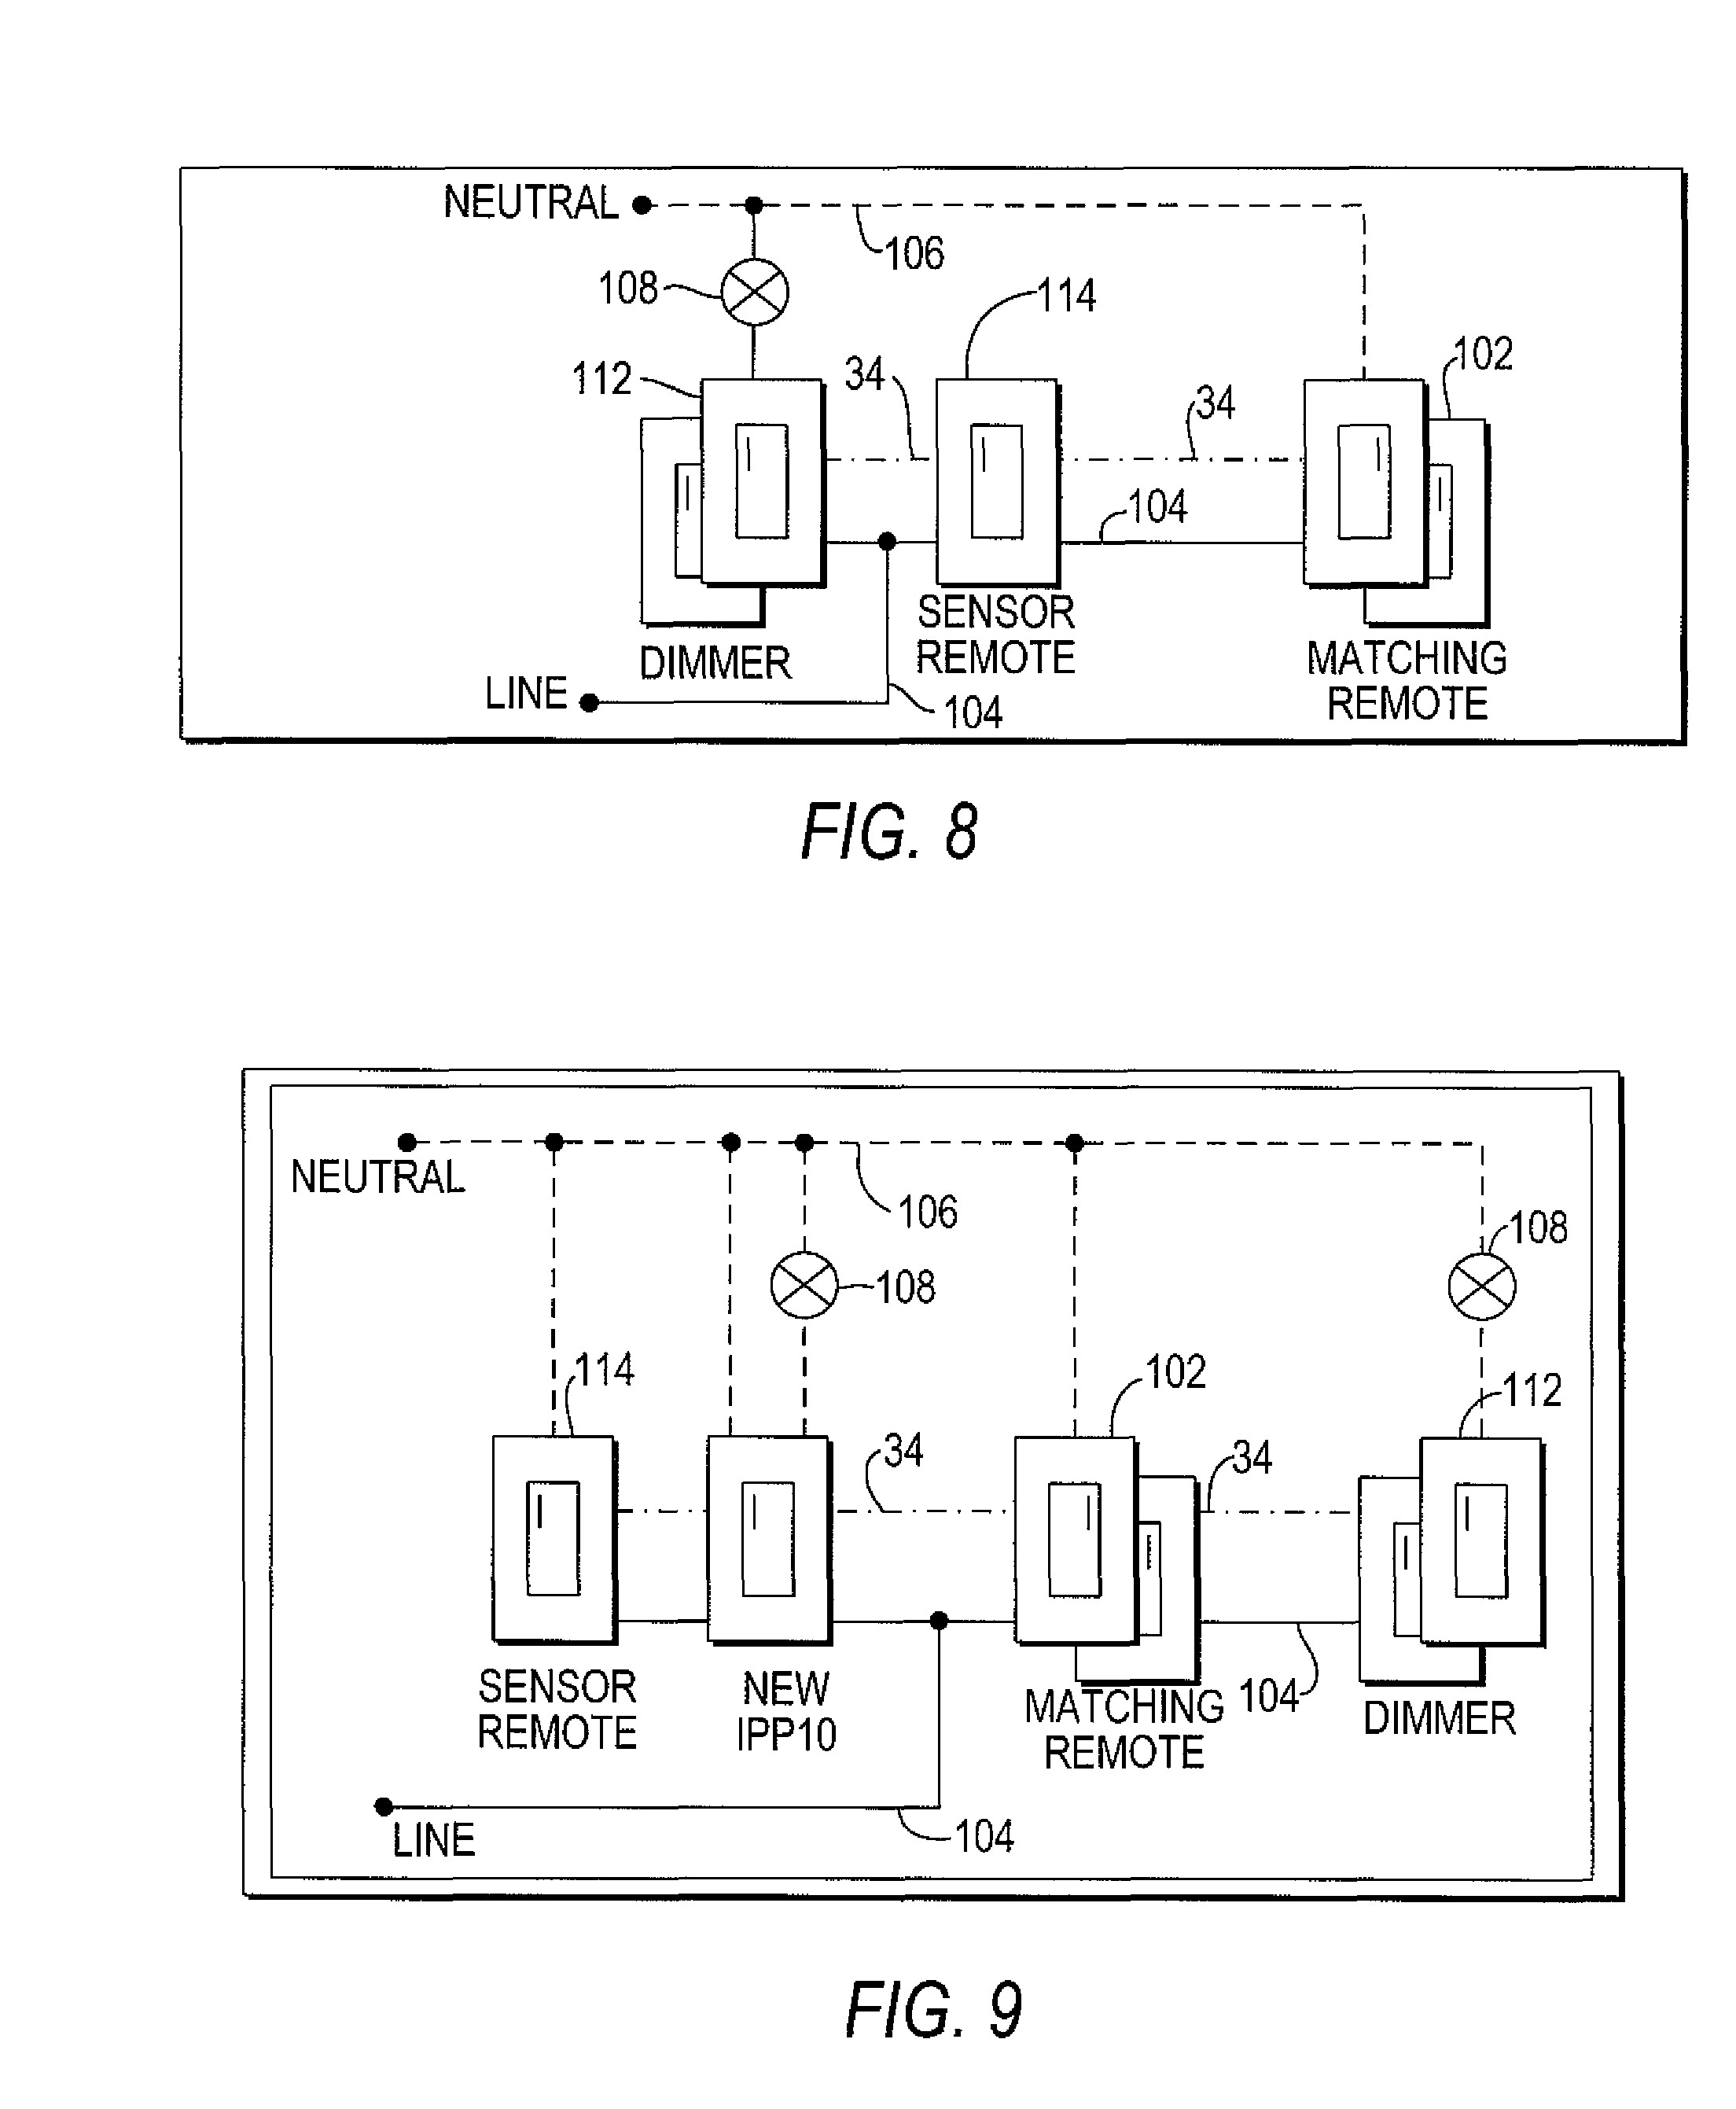 lutron maestro wiring diagram Collection-Lutron Ma 600 Wiring Diagram Unusual Lutron Maestro Ma 600 Wiring Diagram Electrical and Diagrams 18-j